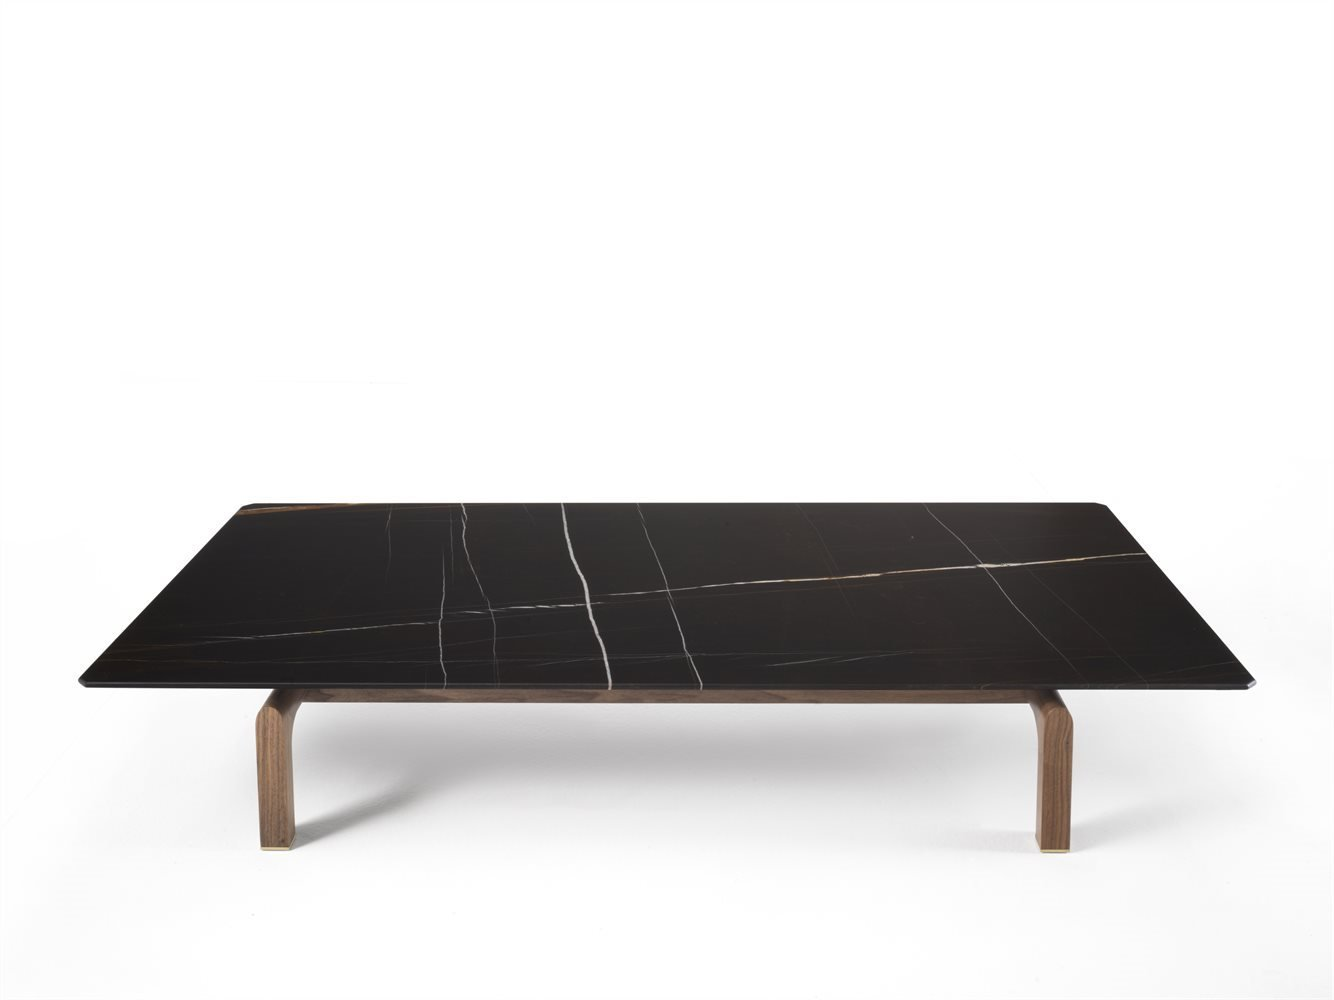 Quay Rettangolare Coffee Table dining from Porada